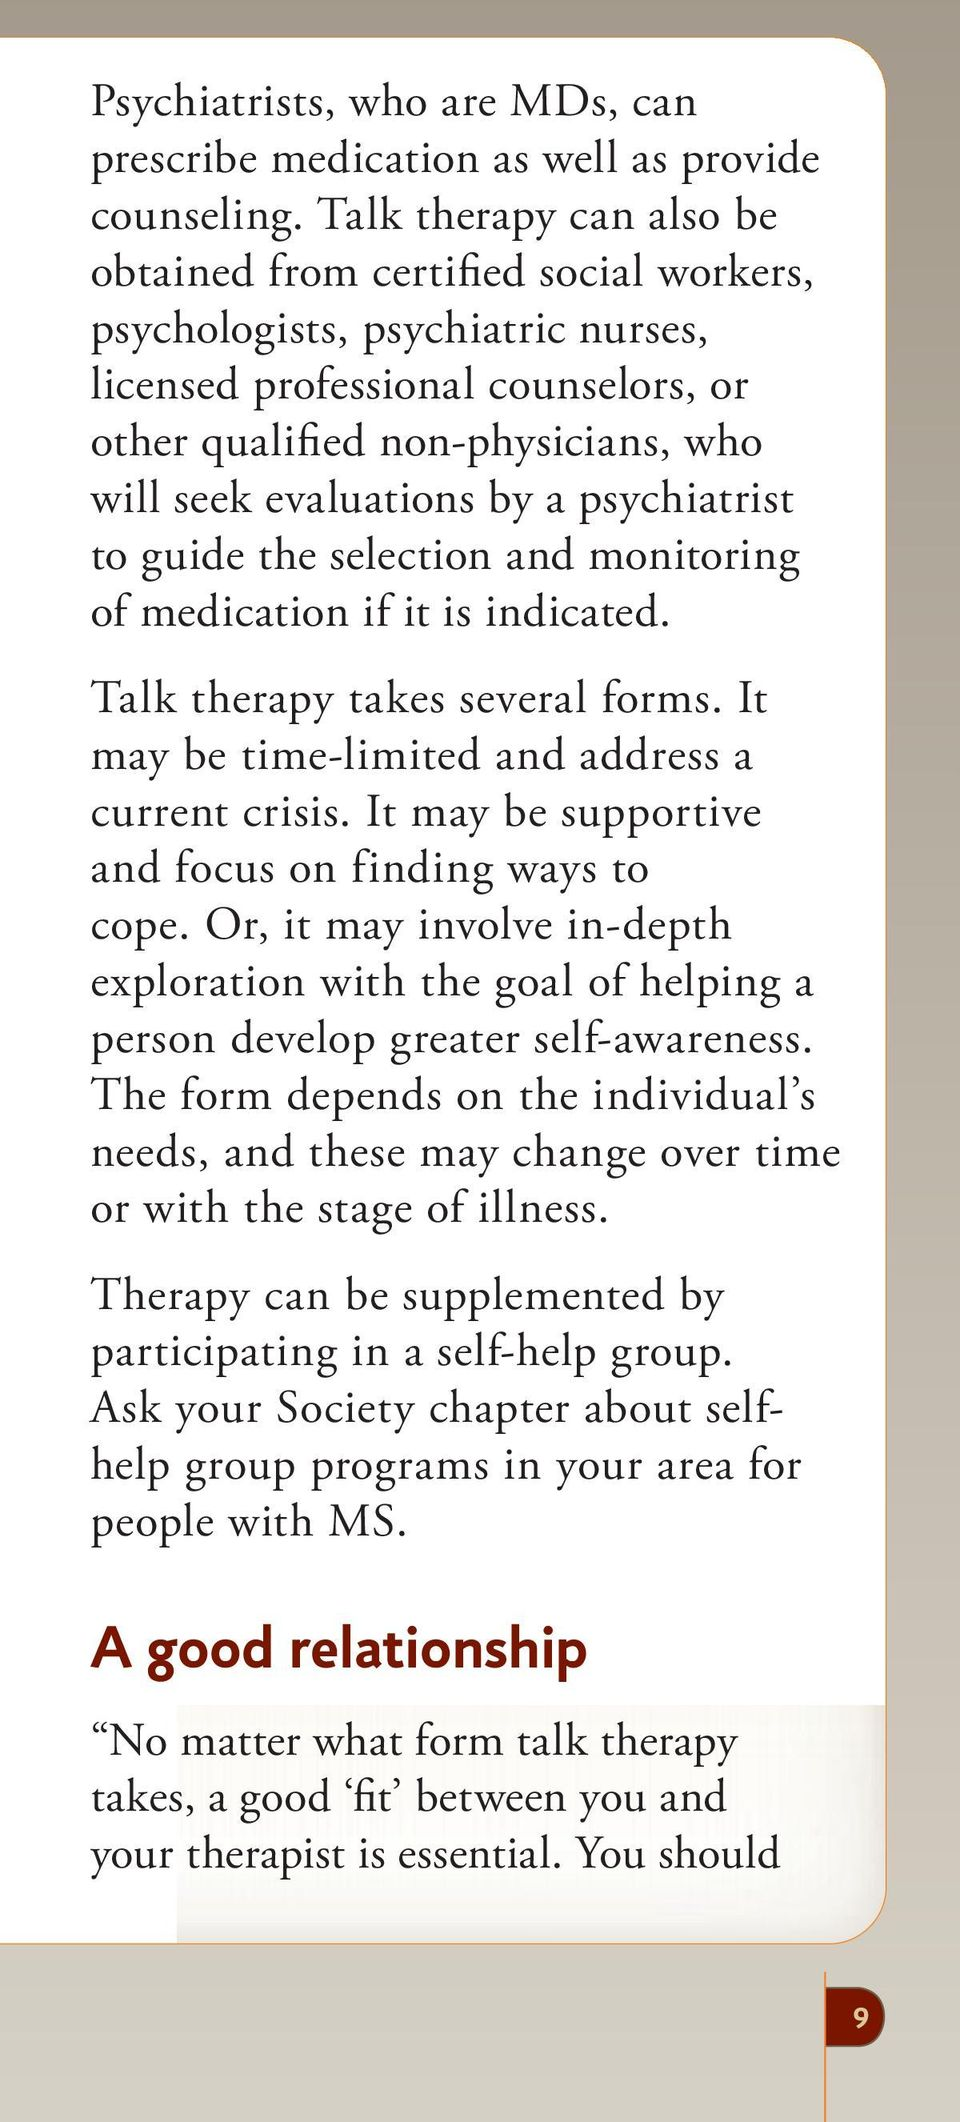 psychiatrist to guide the selection and monitoring of medication if it is indicated. Talk therapy takes several forms. It may be time-limited and address a current crisis.